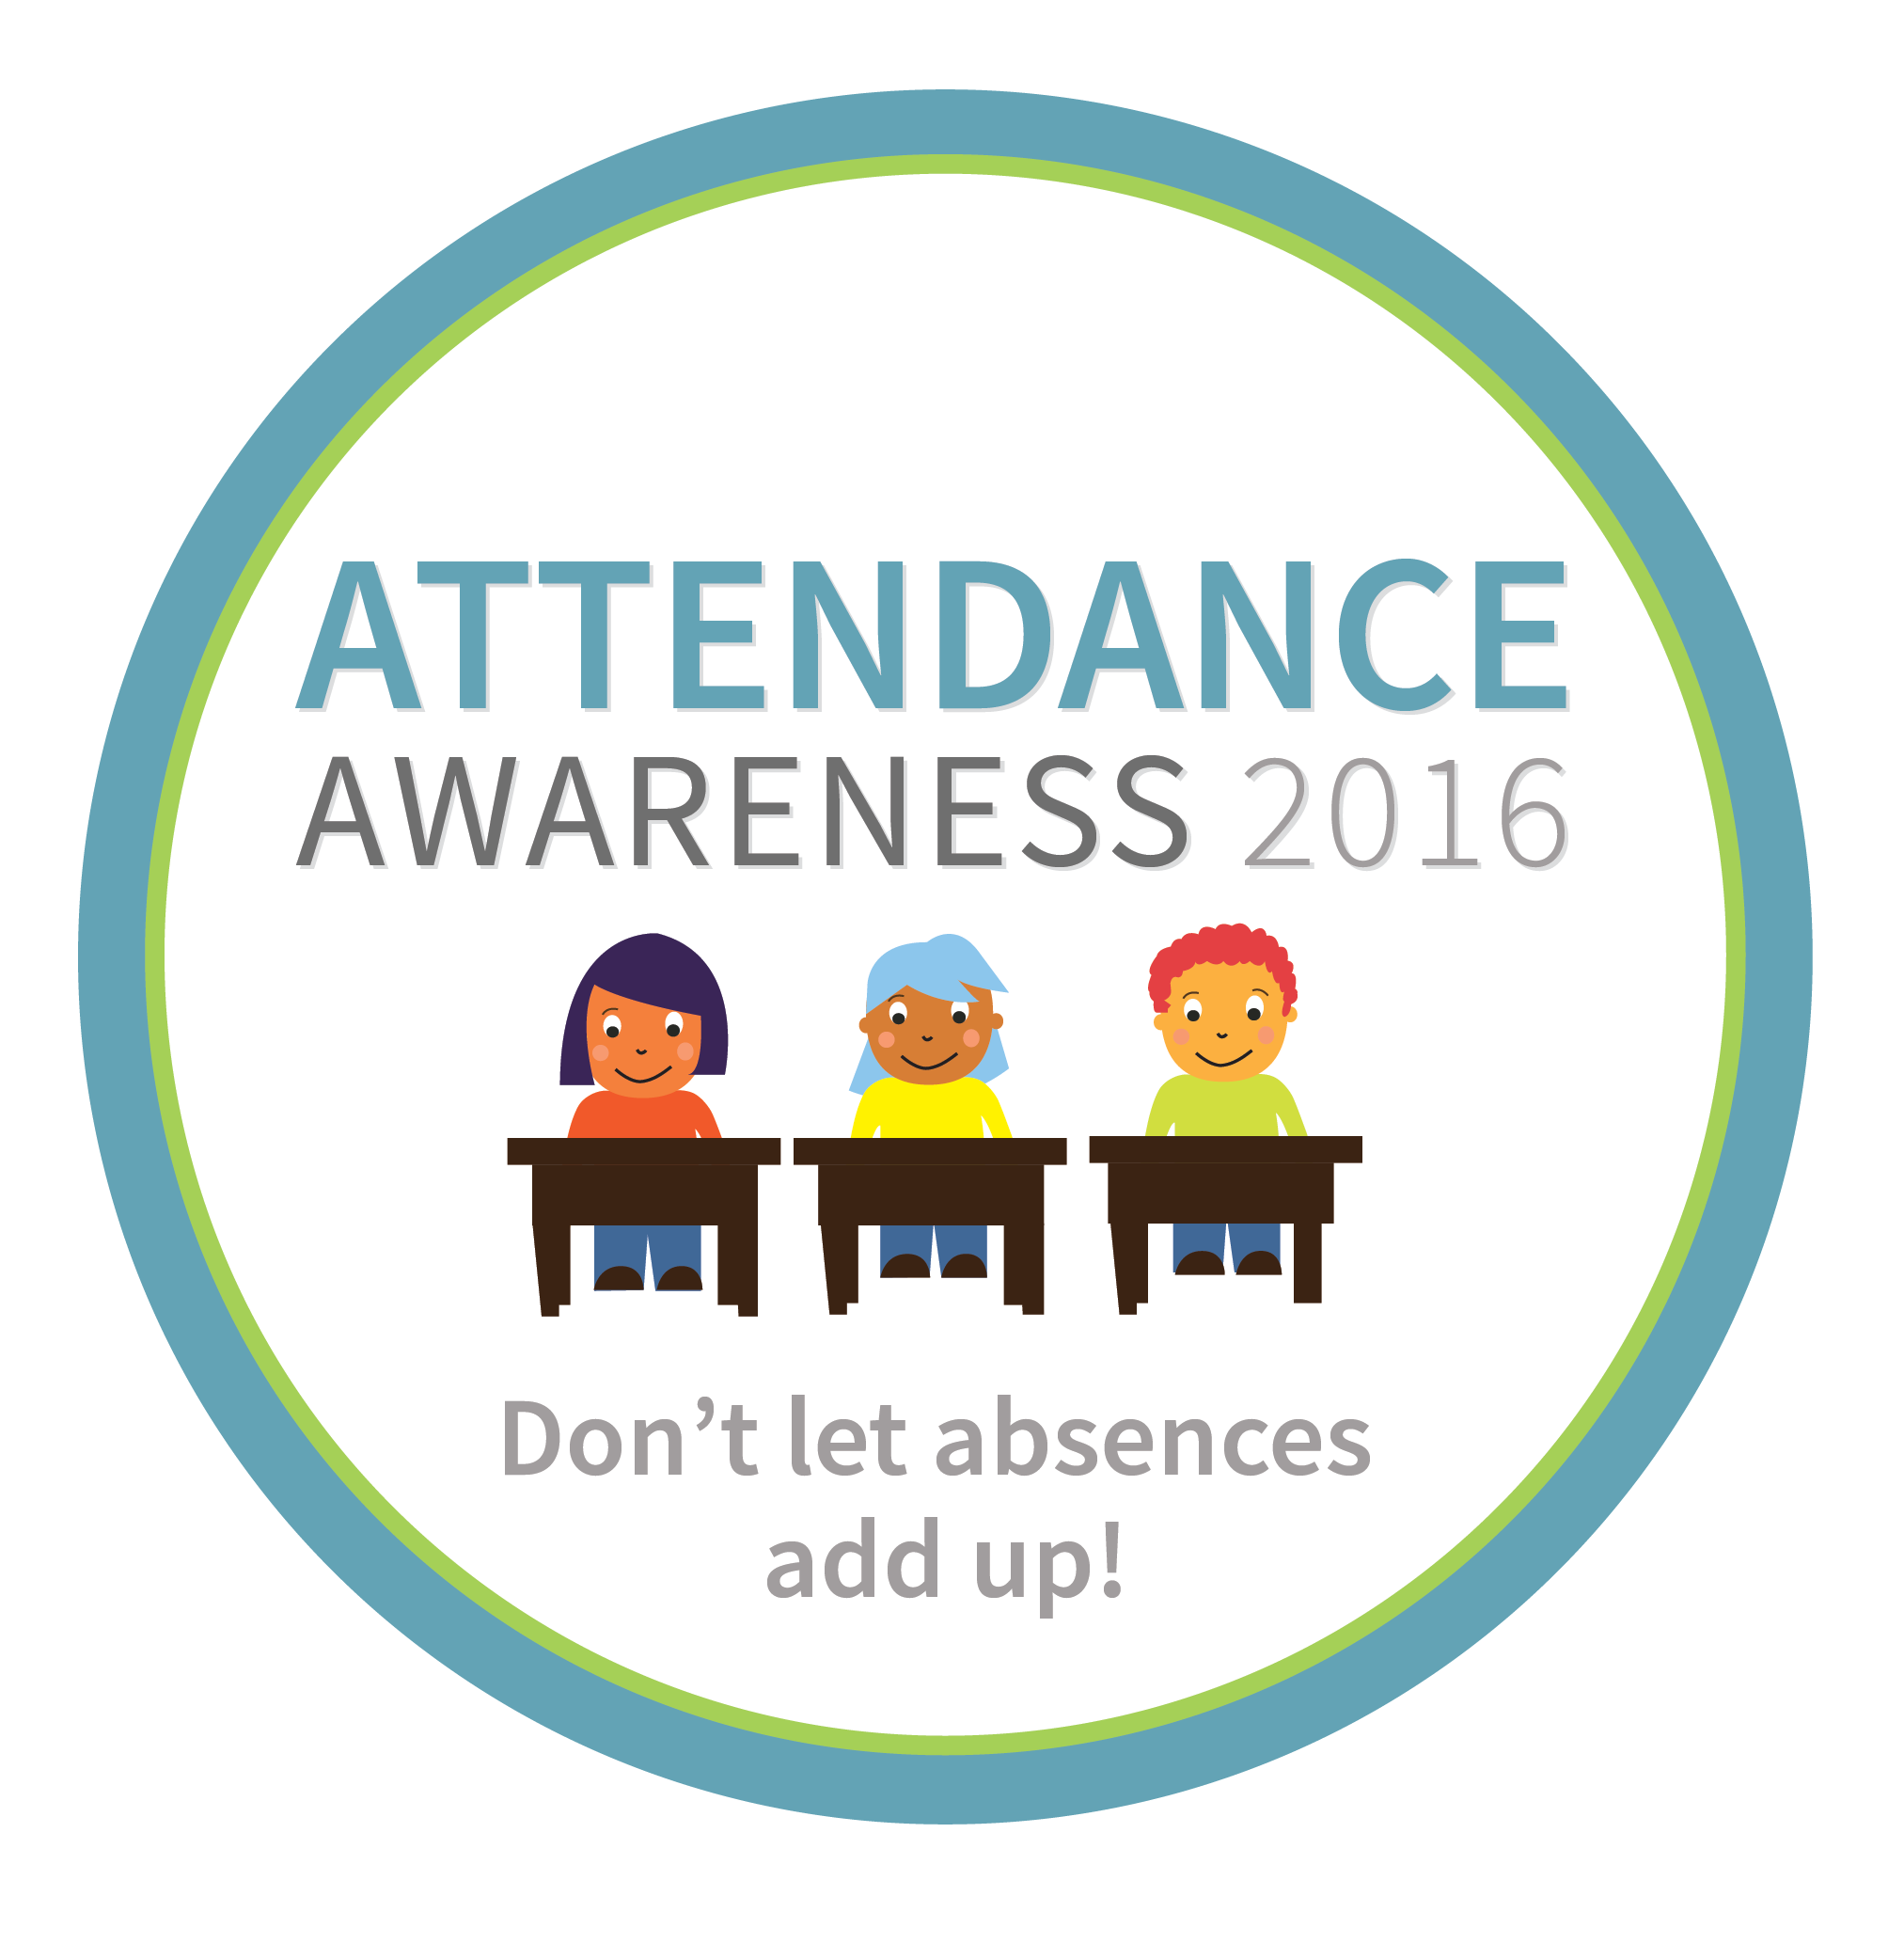 Attendance clipart attendance matters FREE for download on rpelm vector transparent stock